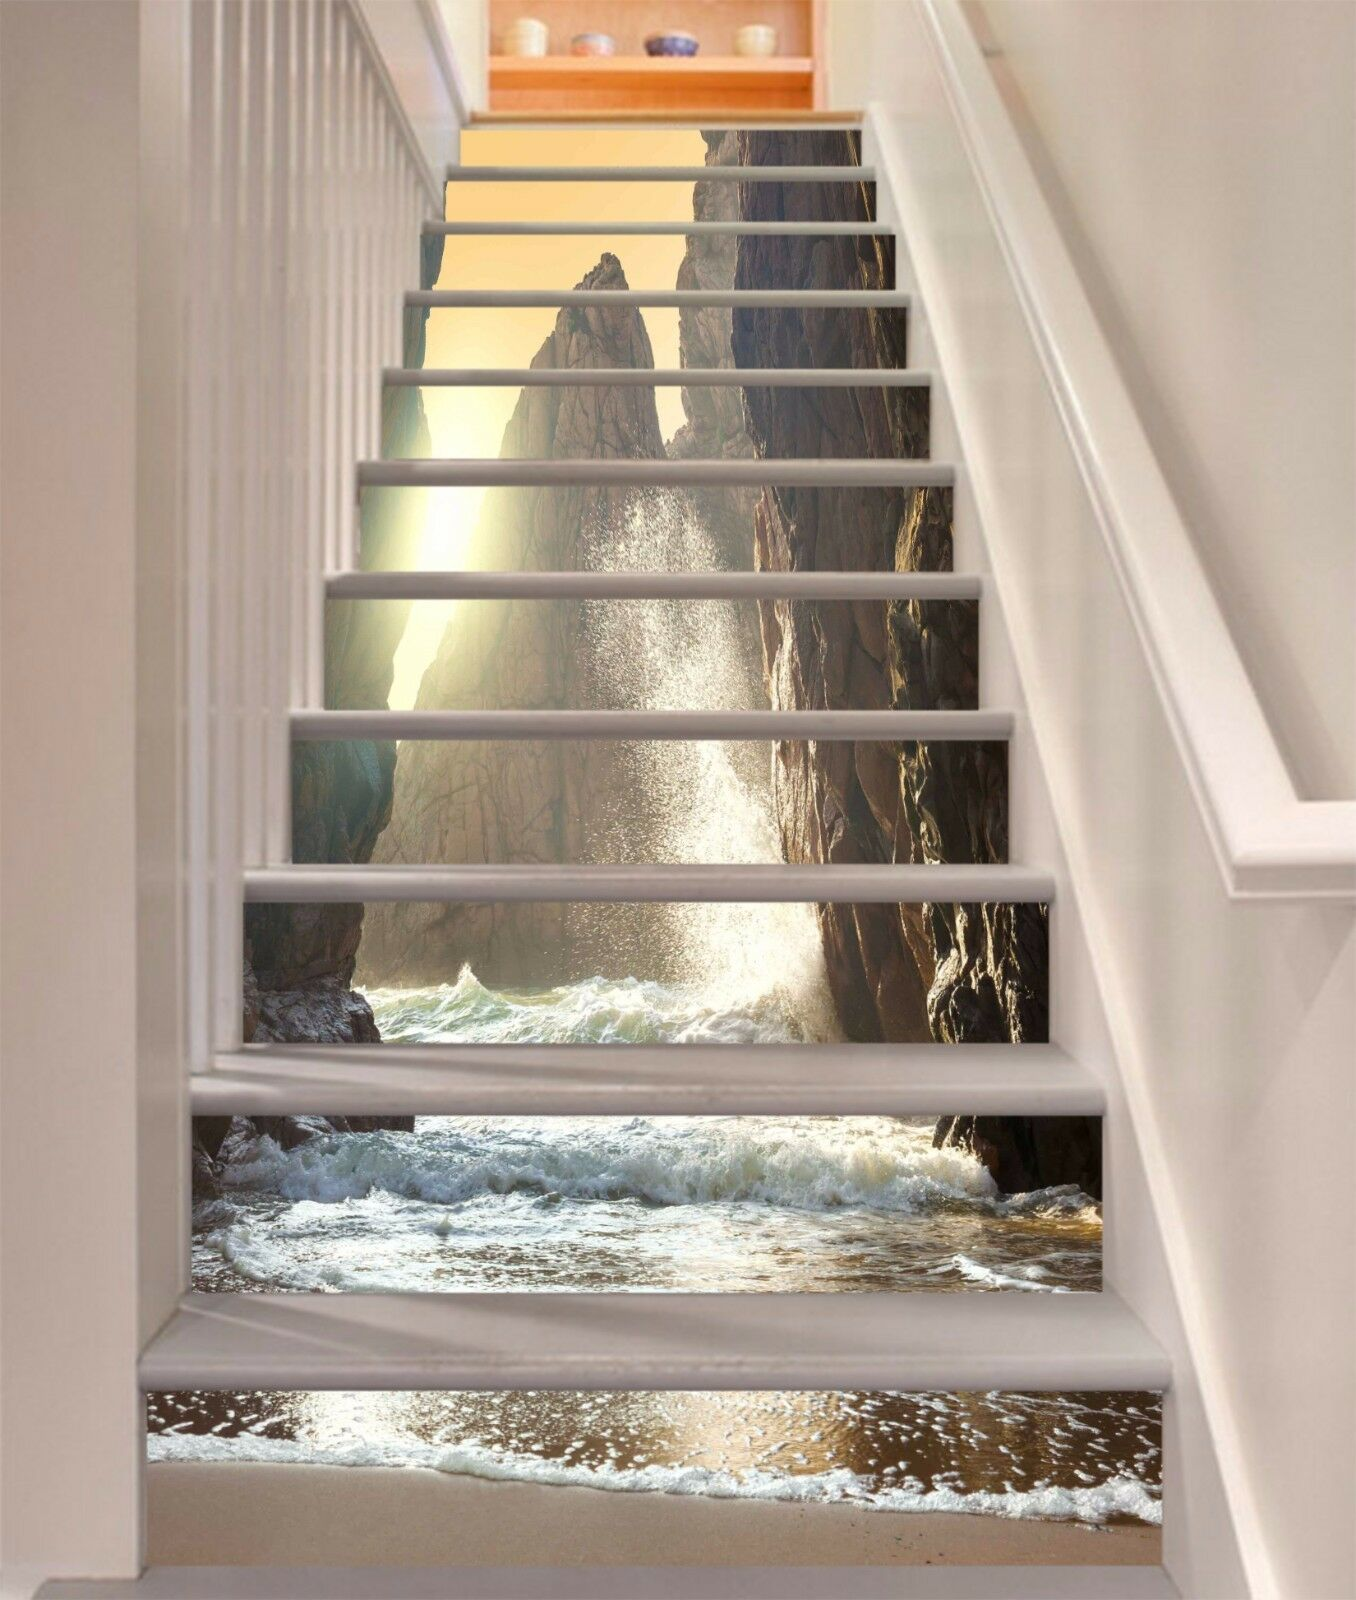 3D Seamount 7 Stair Risers Decoration Photo Mural Vinyl Decal Wallpaper UK